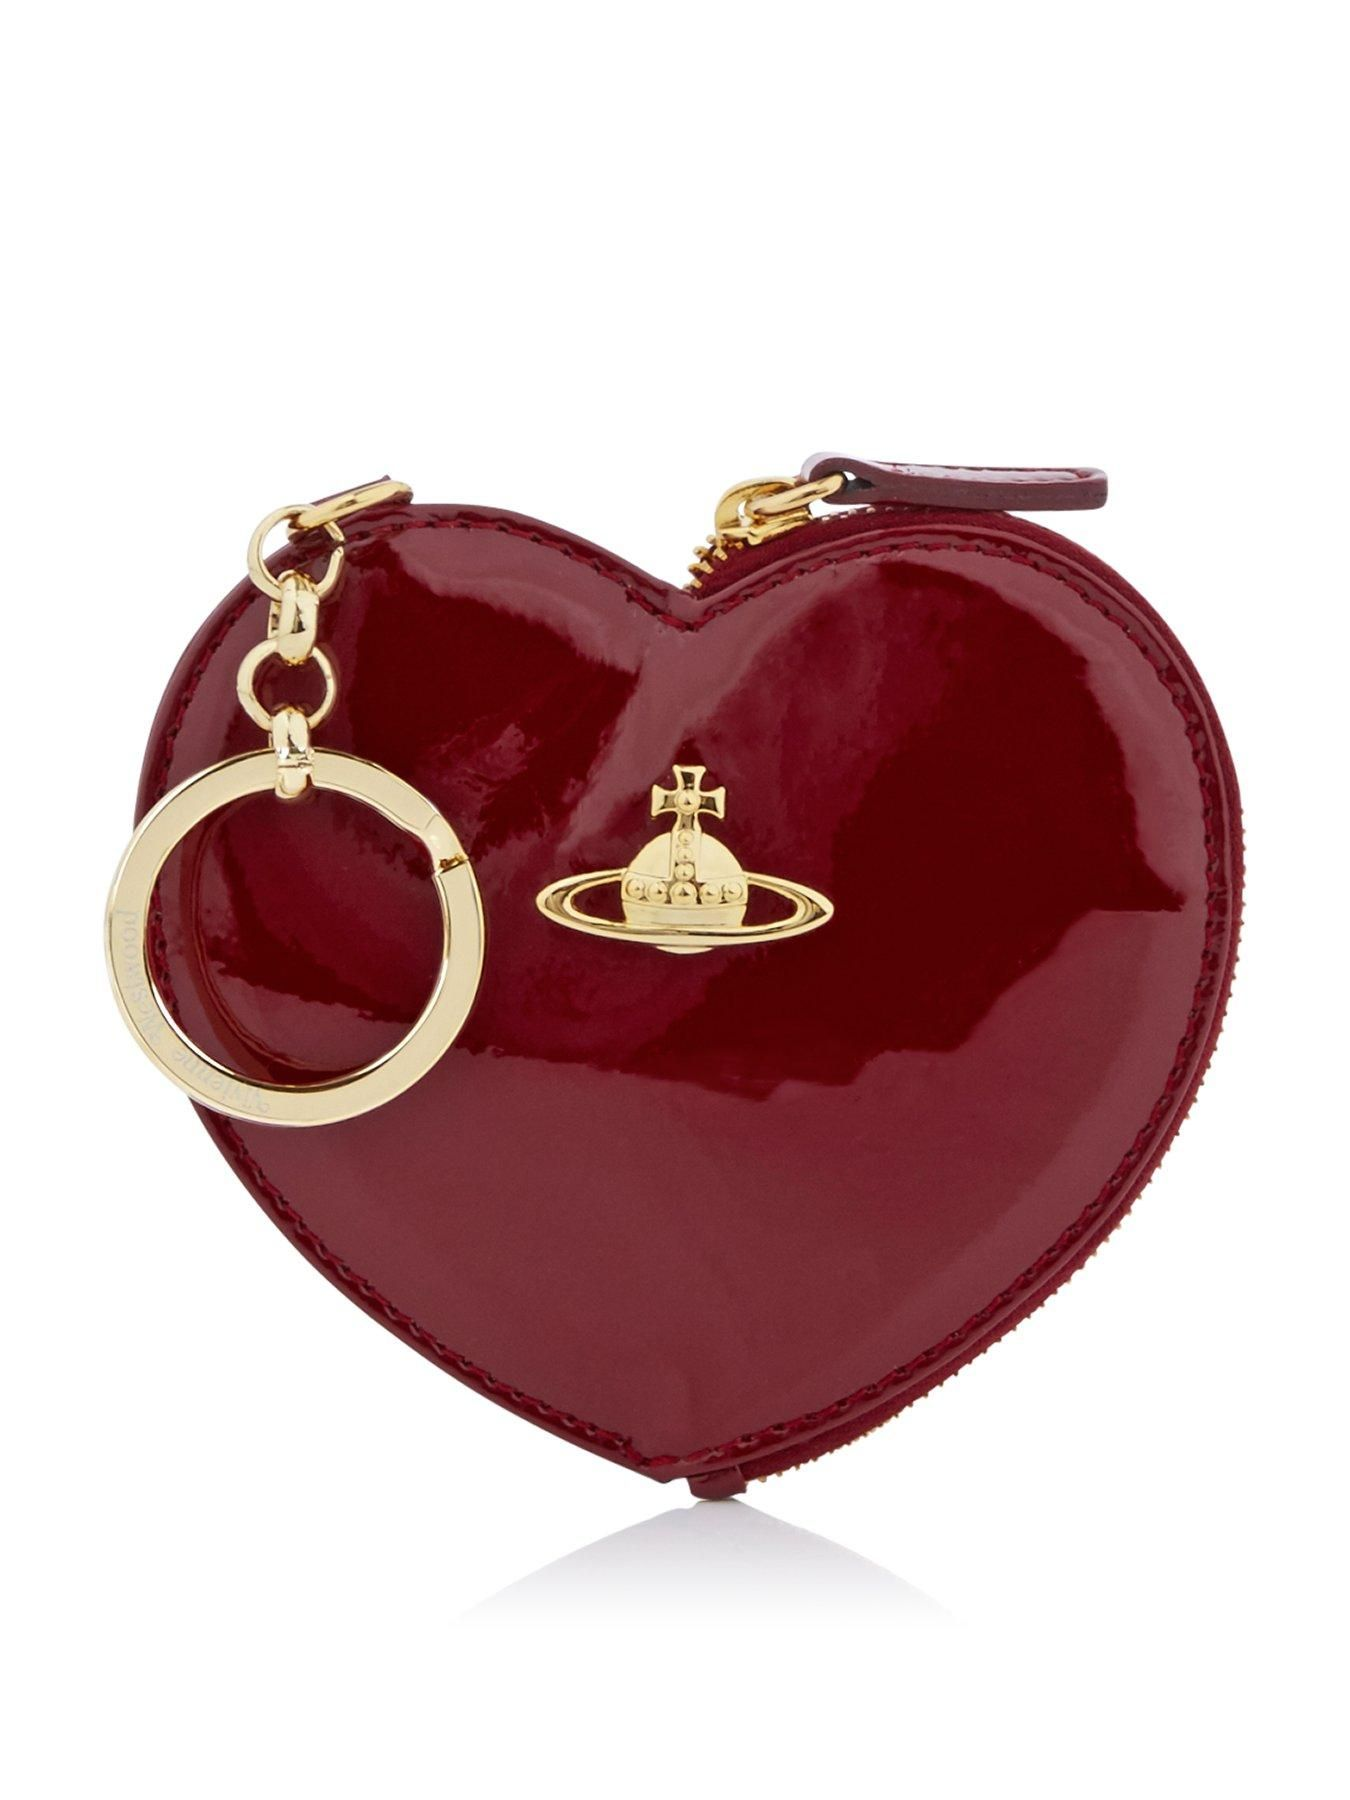 8c51ed7753 Exclusive   www.very.co.uk   Novelty Bags   Heart keyring, Leather ...